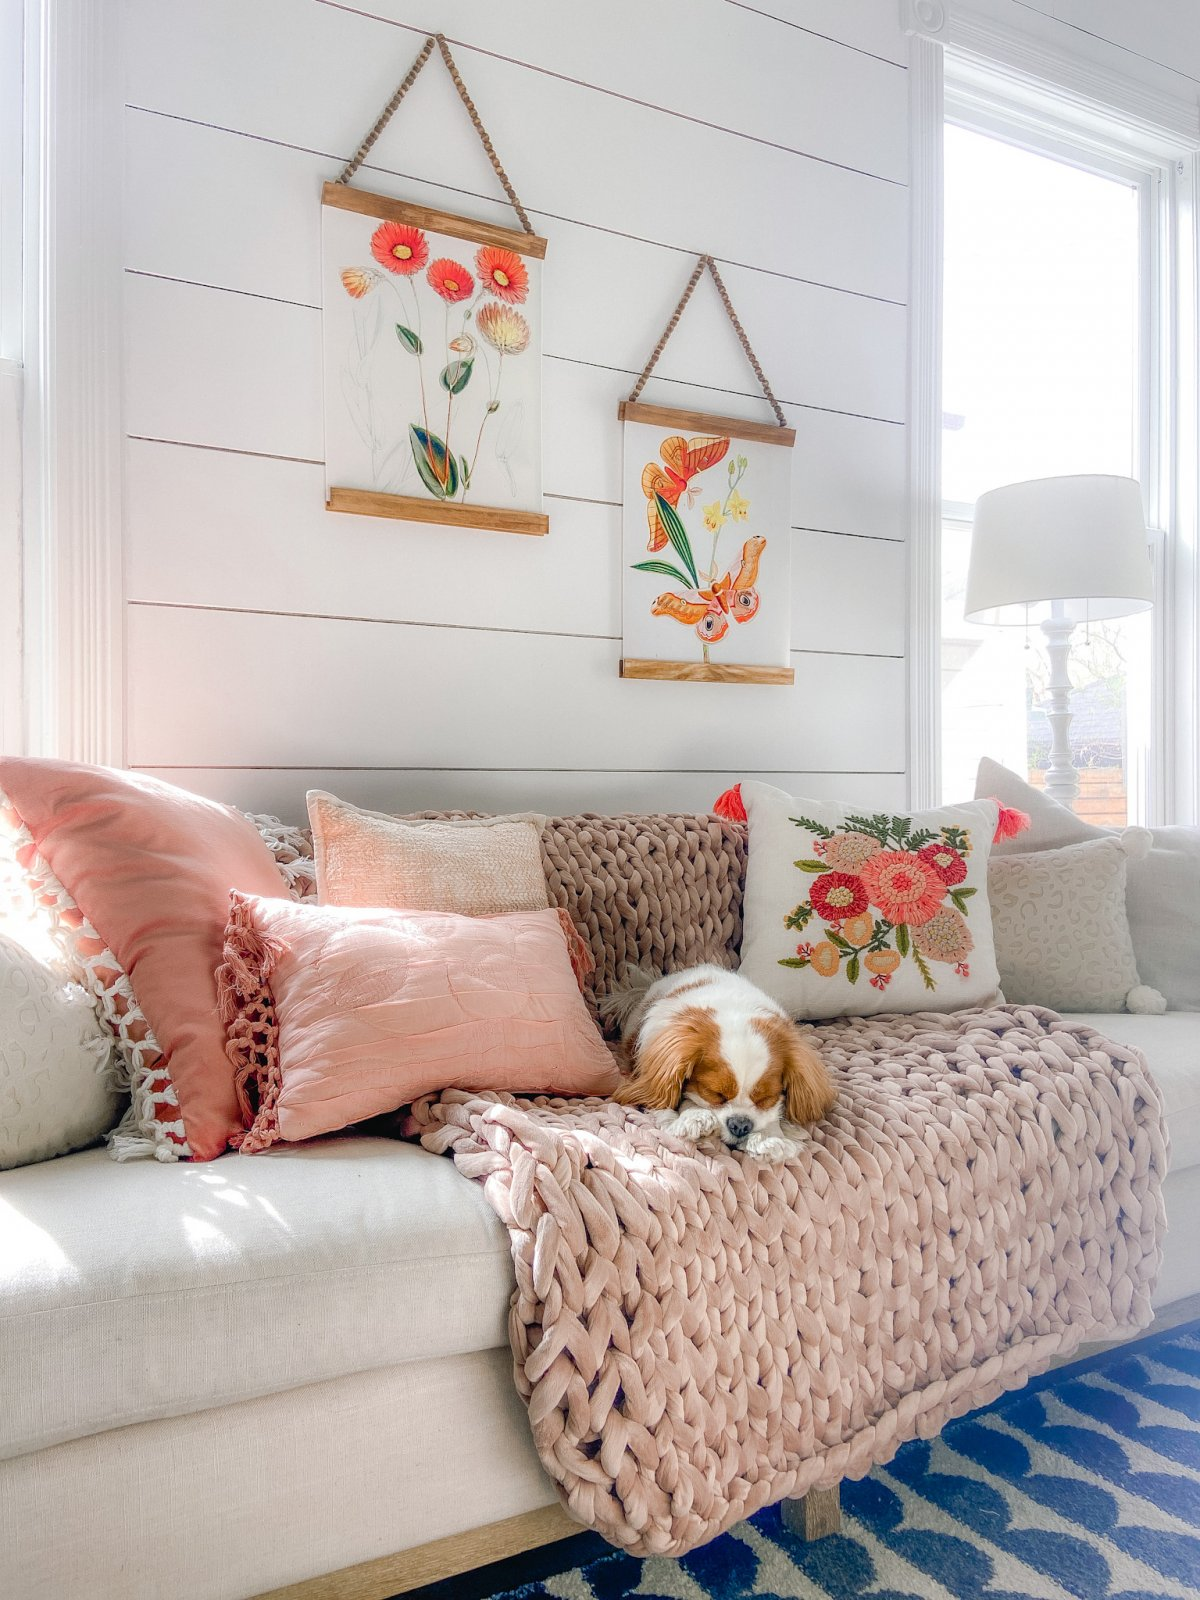 Spring Botanical Prints with DIY Beaded Hangers. Bright flowers match a spring pillow on a pink blanket.